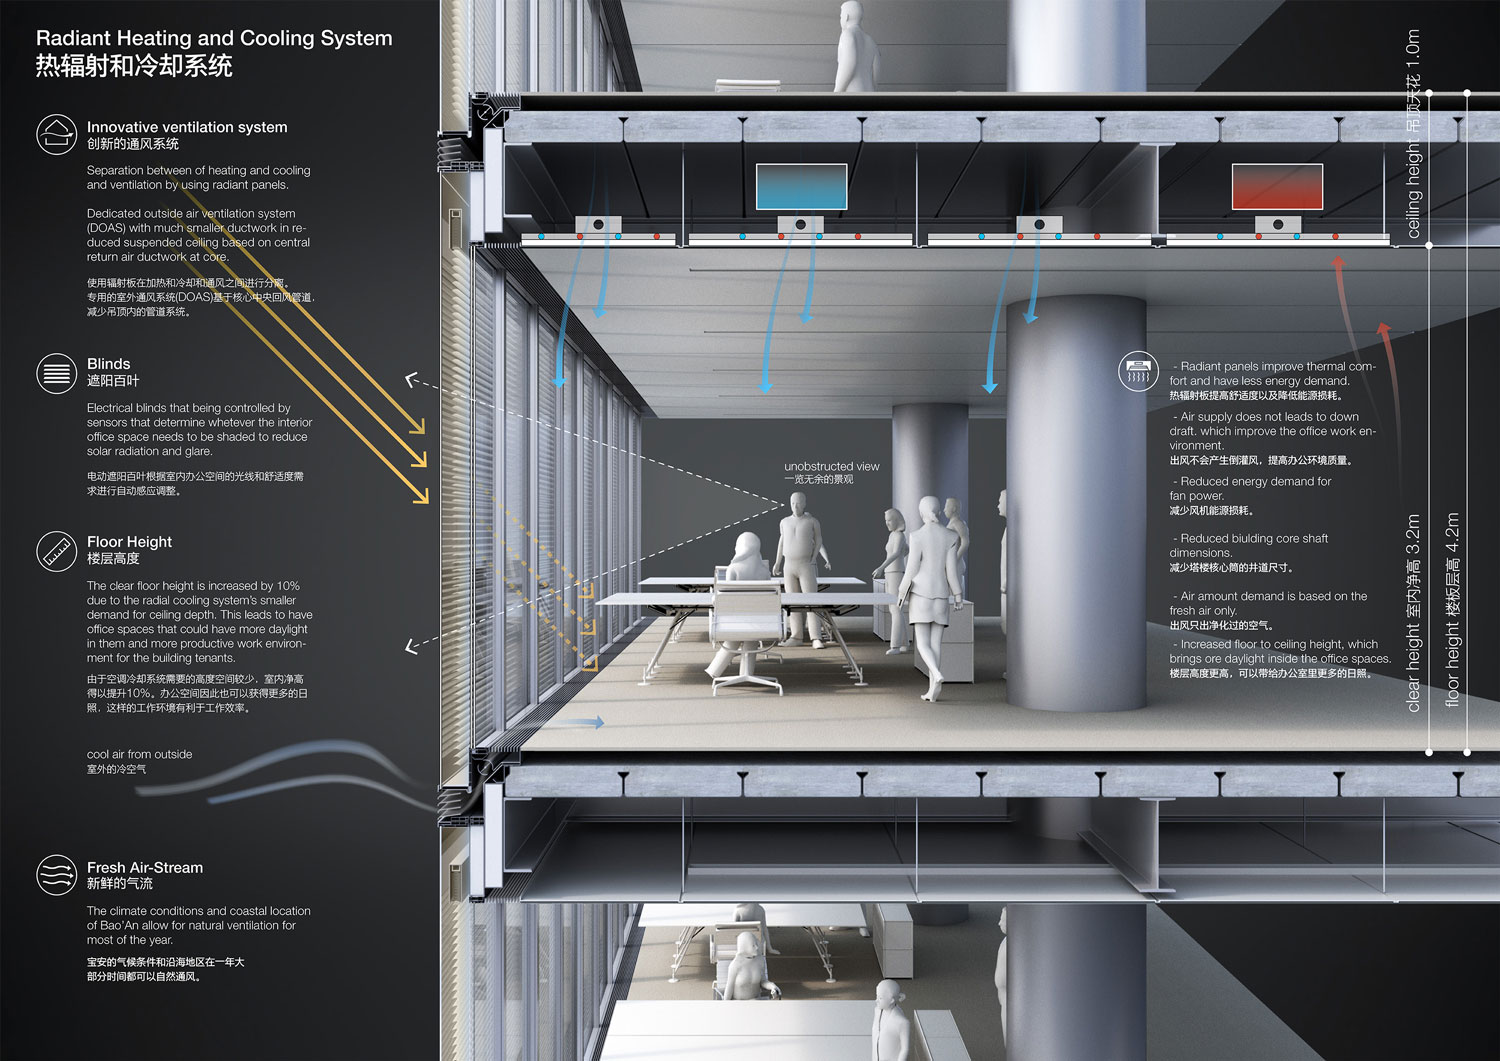 Heating and Cooling System Concept Jaeger Kahlen Partners Architects Ltd.}